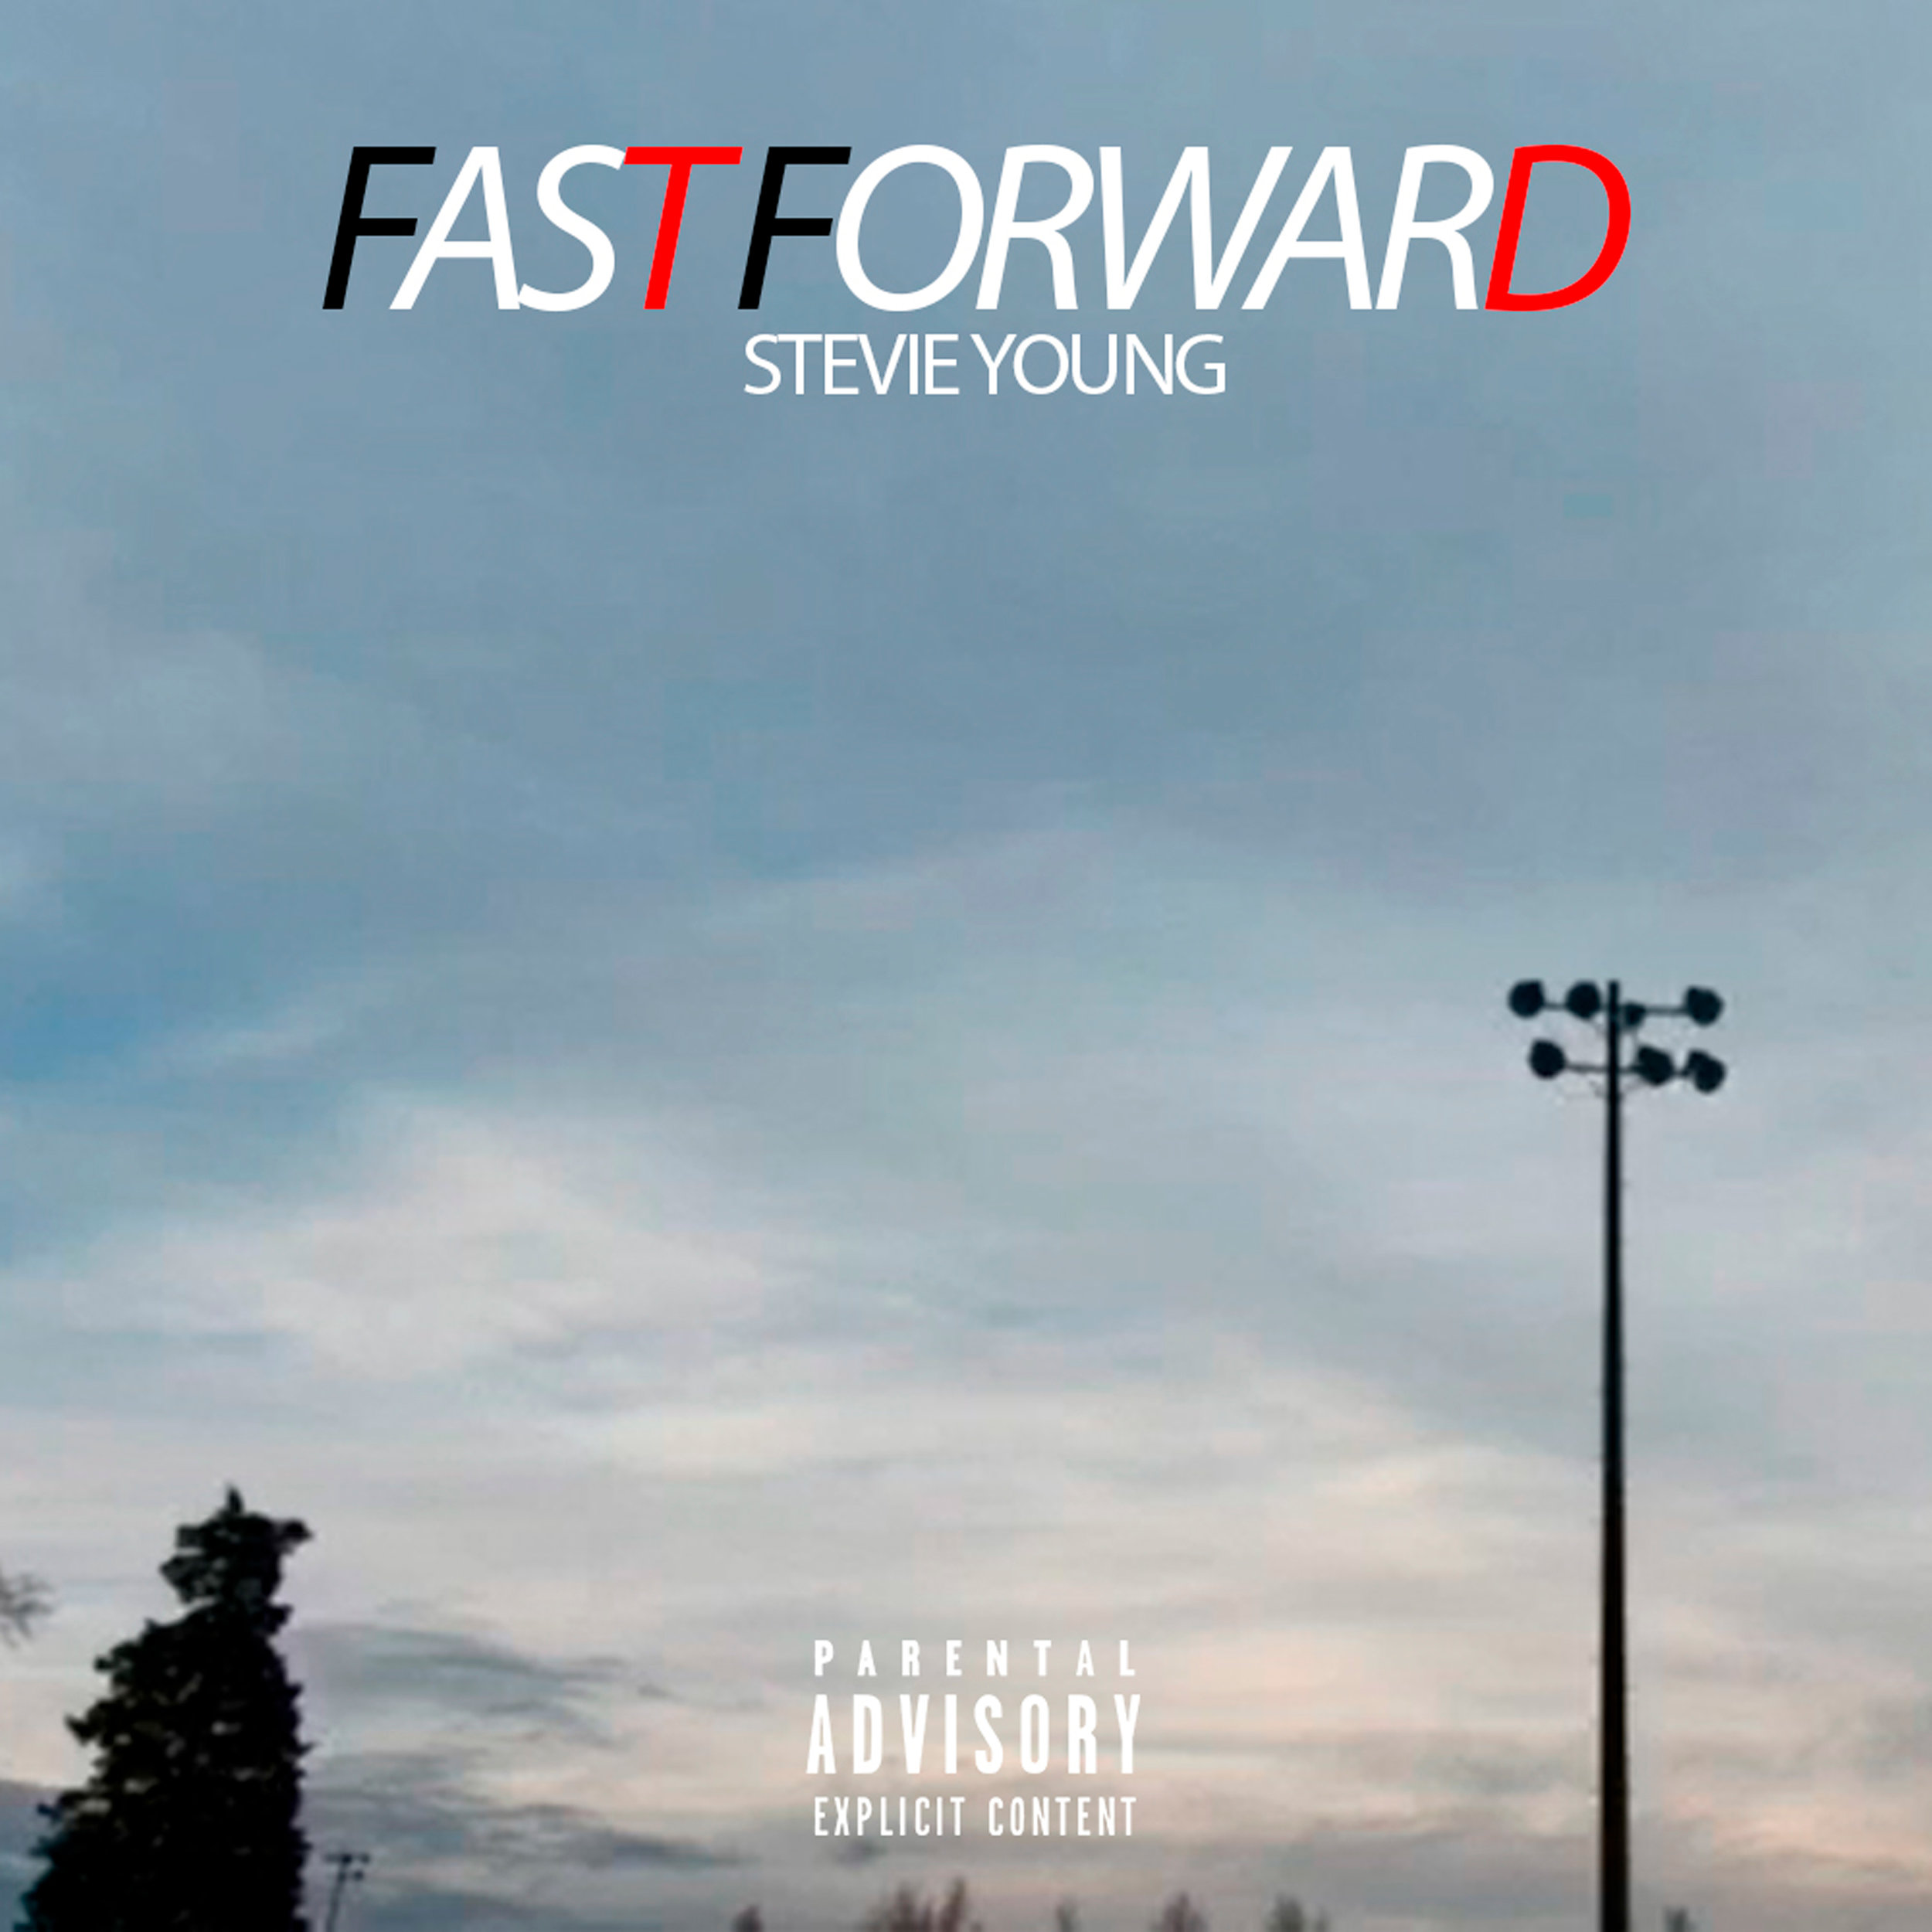 Stevie Young - Fast Forward - 2-1554126522.jpg